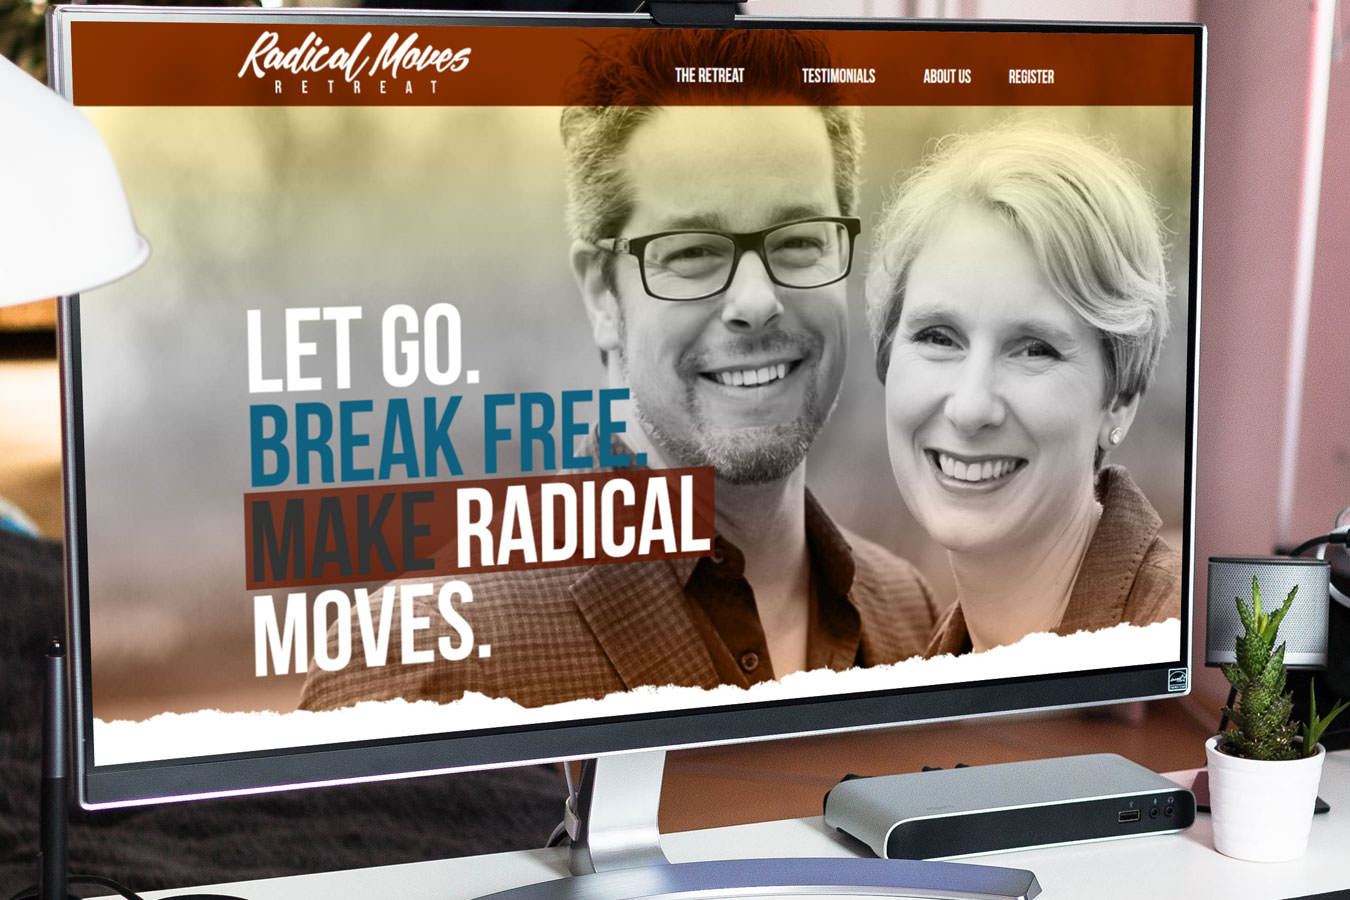 Radical Moves website homepage displayed on desktop